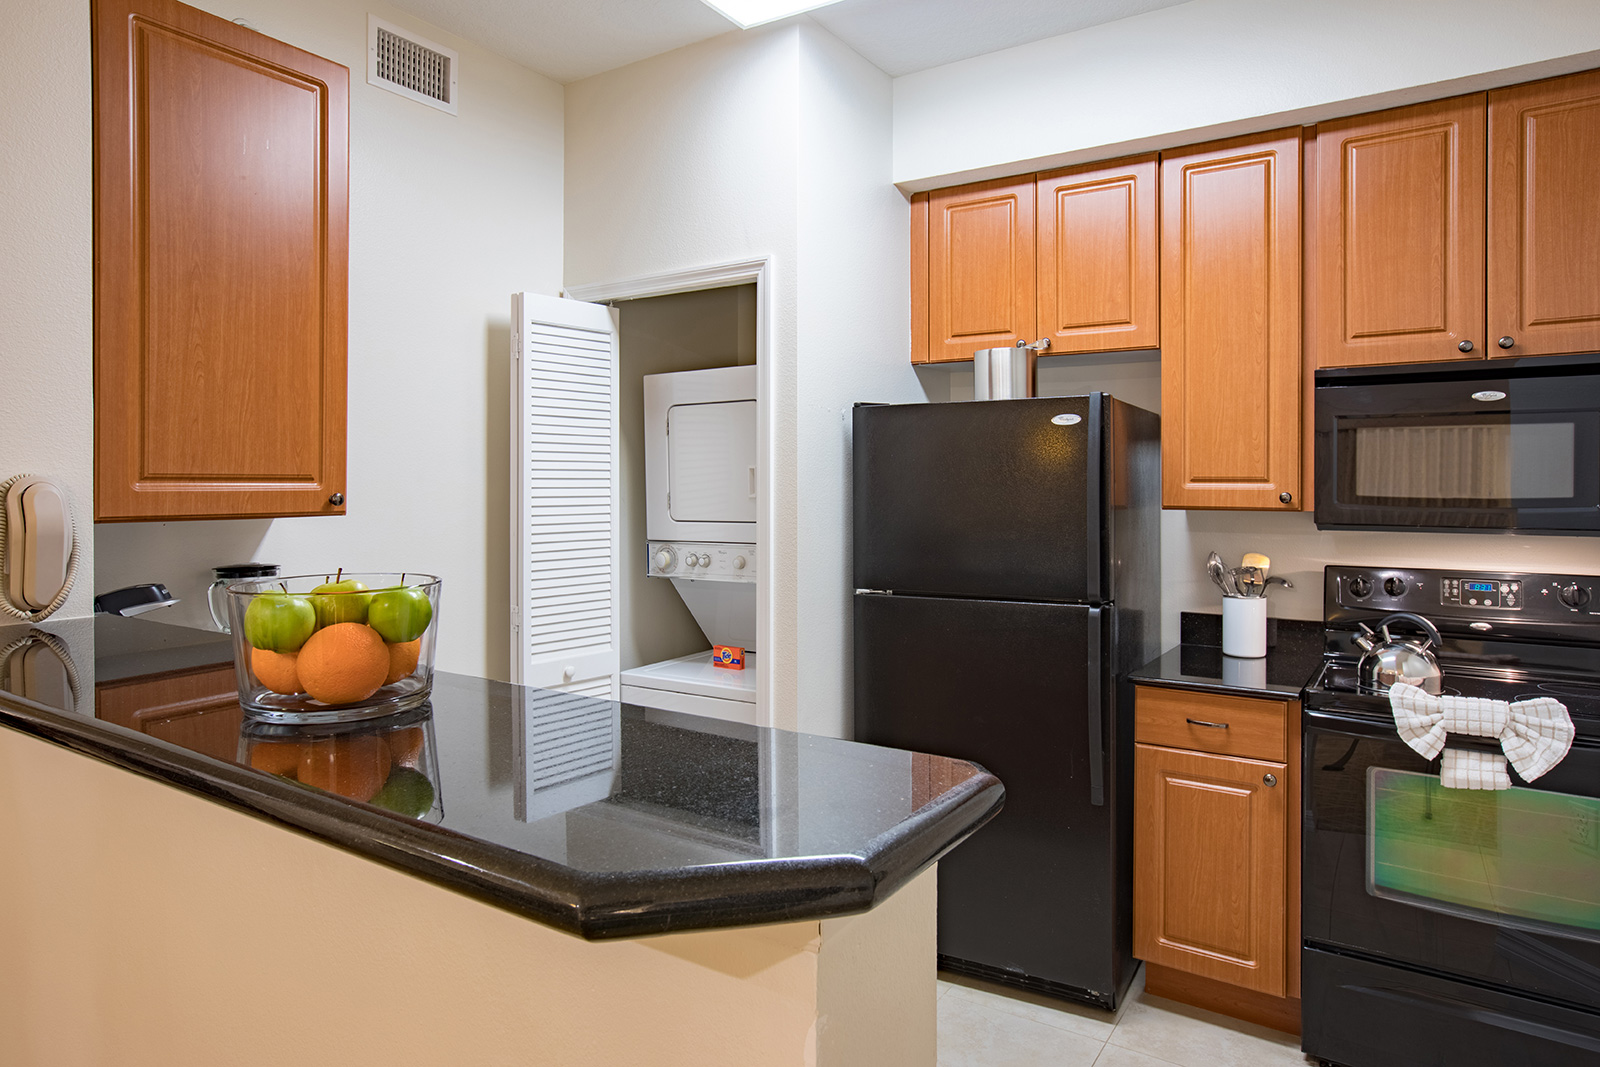 Kitchen Room Bedroom Orlando All Suite Hotels One And Two Bedroom Resort Suites In